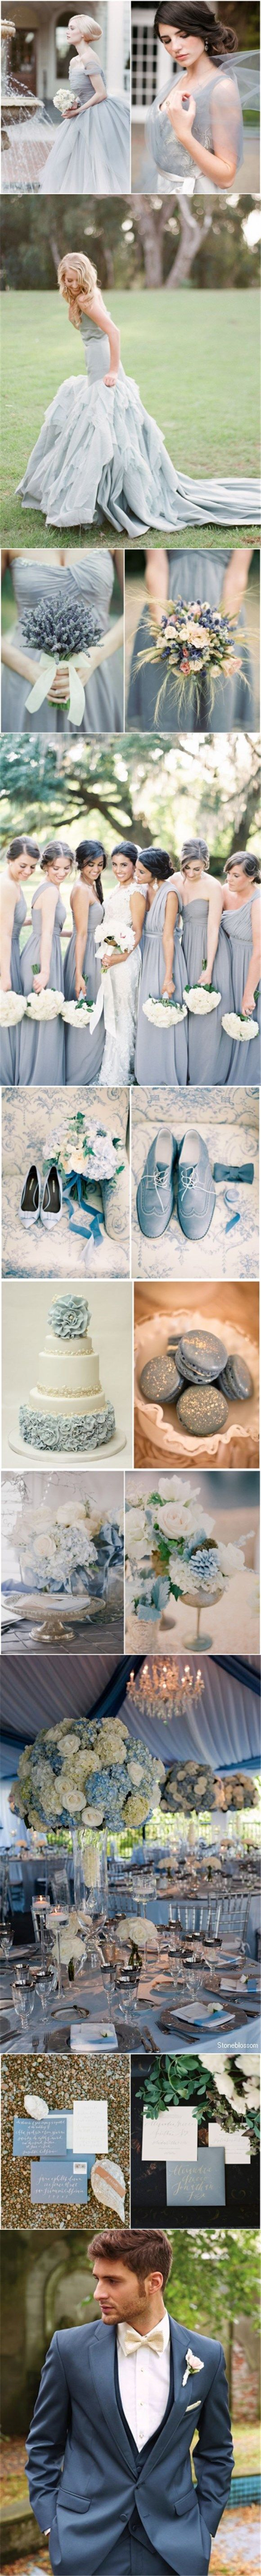 Slate blue wedding decor   Slate and Dusty Blue Wedding Ideas  Pinterest  Dusty blue